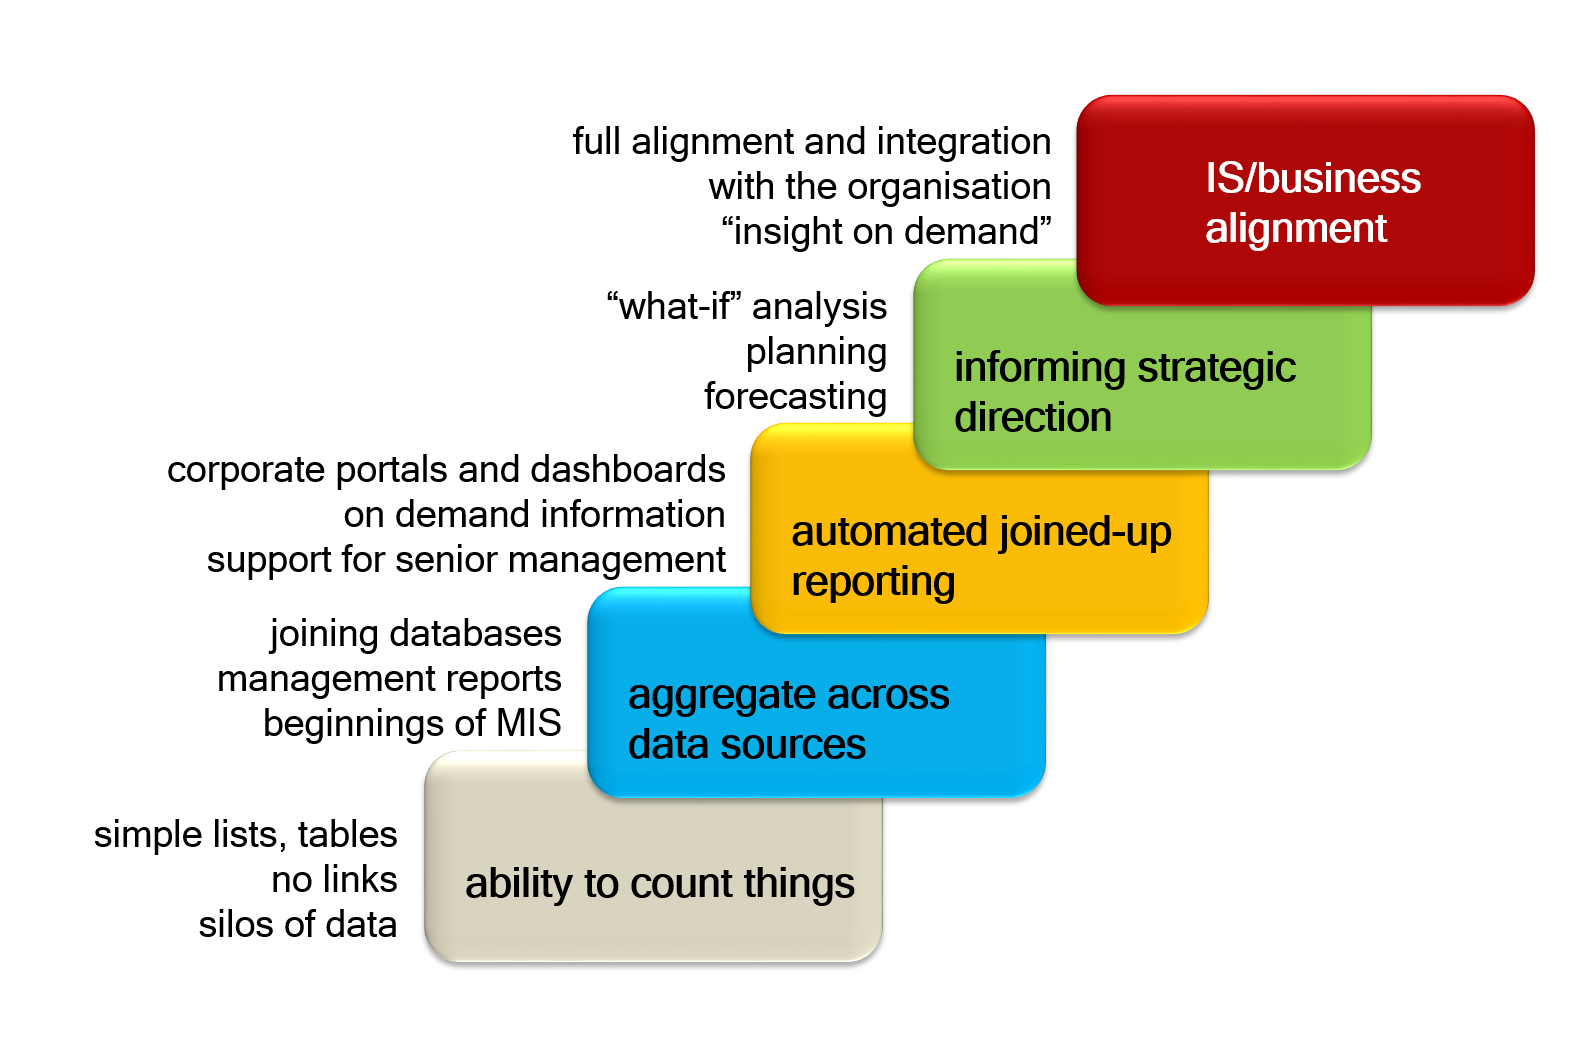 Diagram showing steps of the Maturity Model. These are: Ability to count things, aggregate across data sources, automated joined-up reporting, informing strategic direction and IS/business alignment